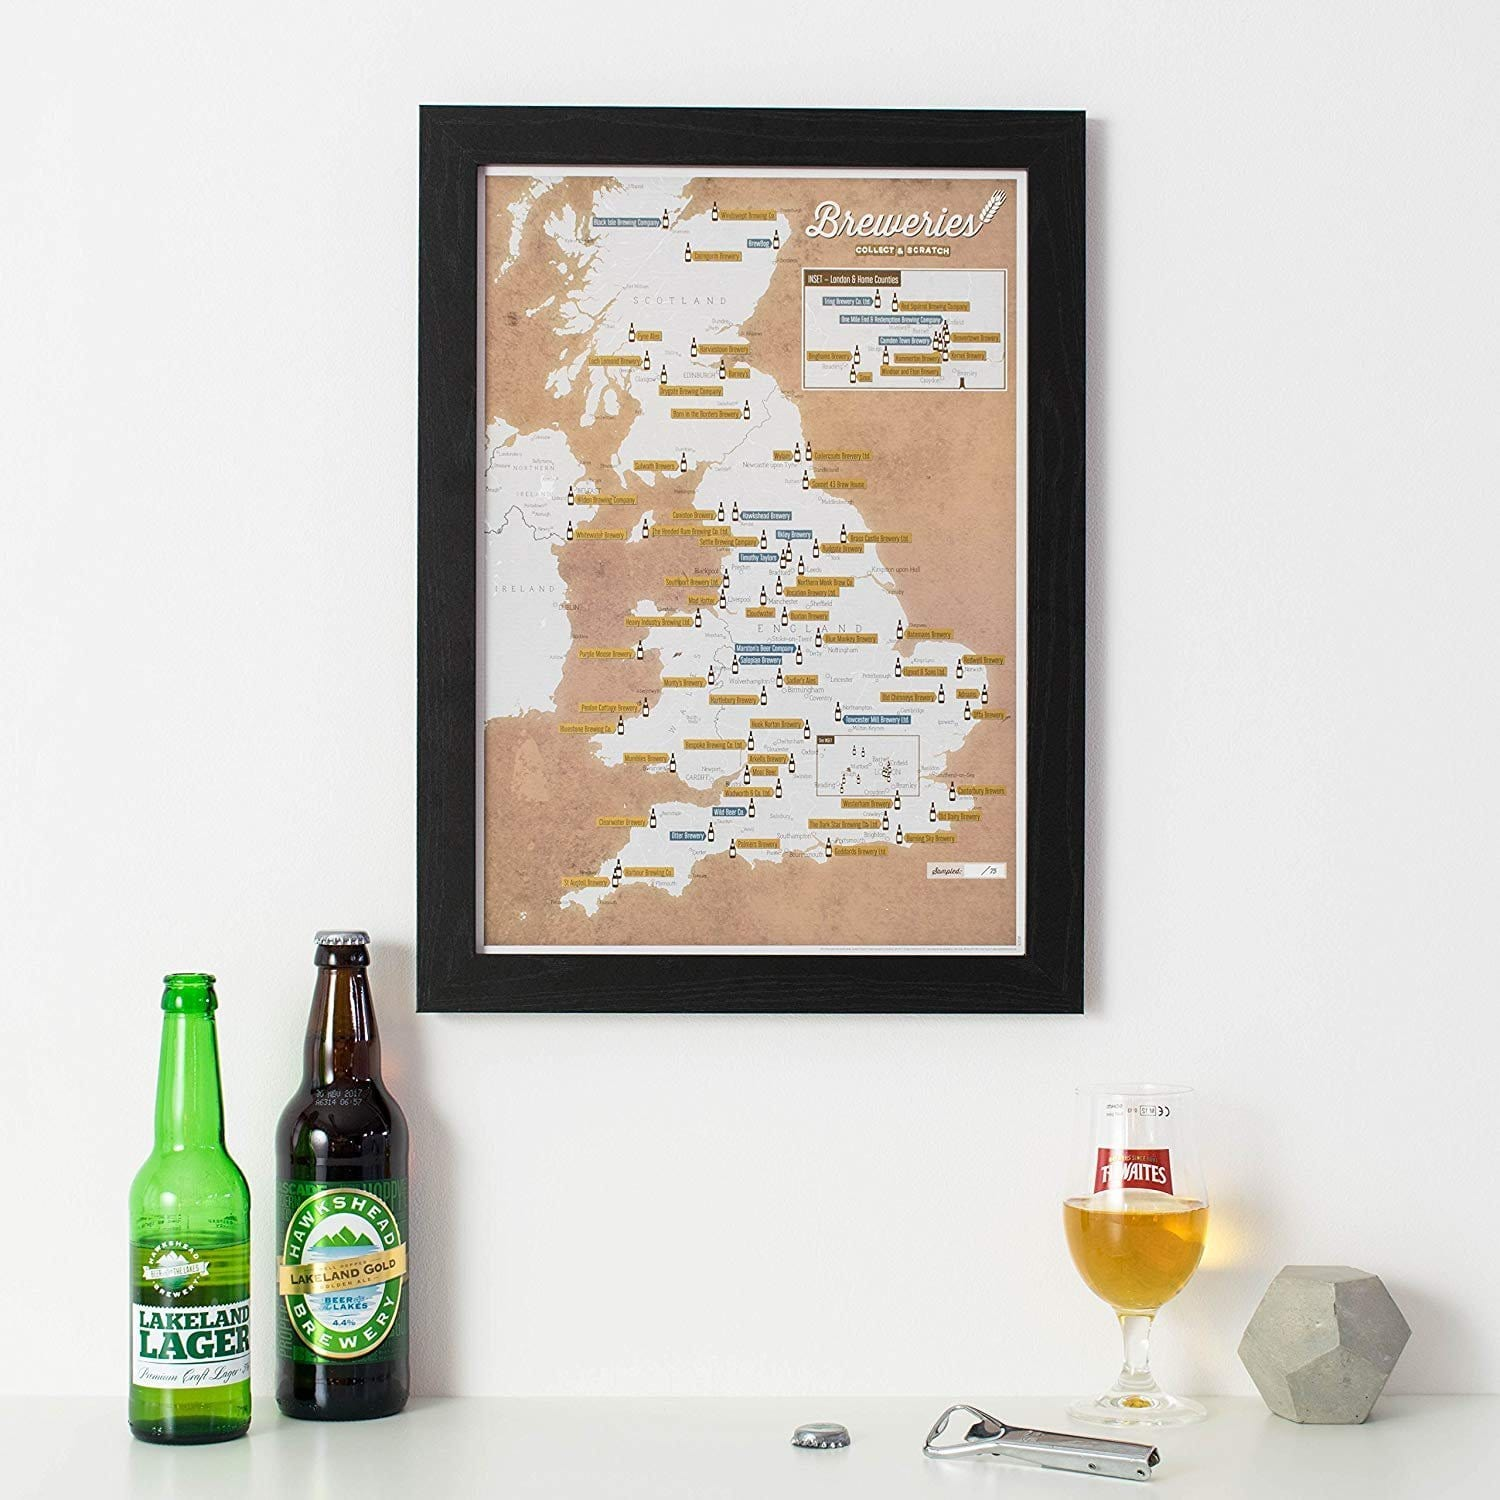 Breweries (Collect And Scratch) Travel Map